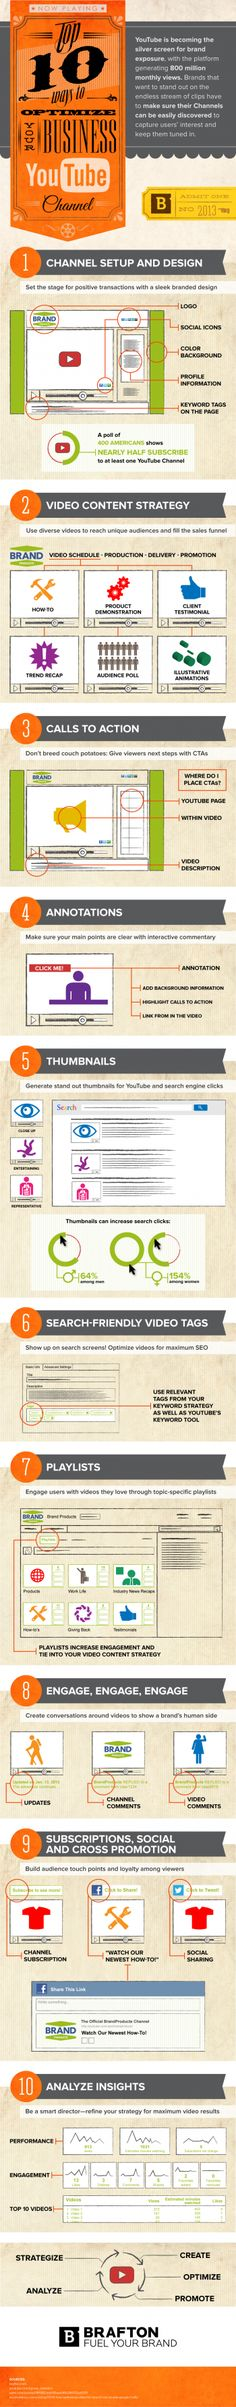 Brafton's Infographic: Private: Top 10 Ways to Optimize Your Business YouTube Channel